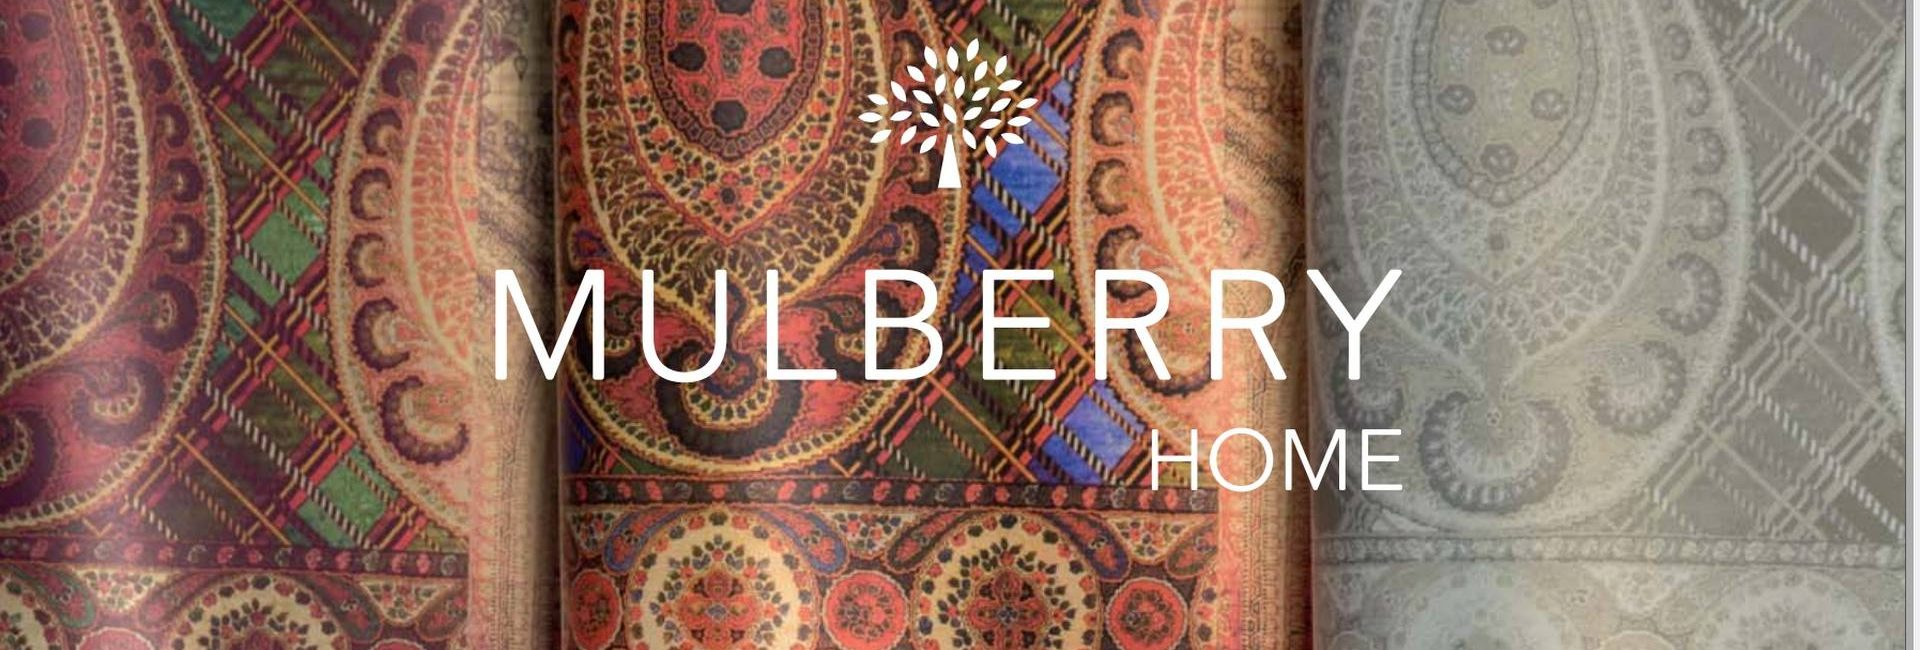 Mulberry Home fabrics and wallpapers - available from Fabric Gallery and Interiors in Dunnington, York